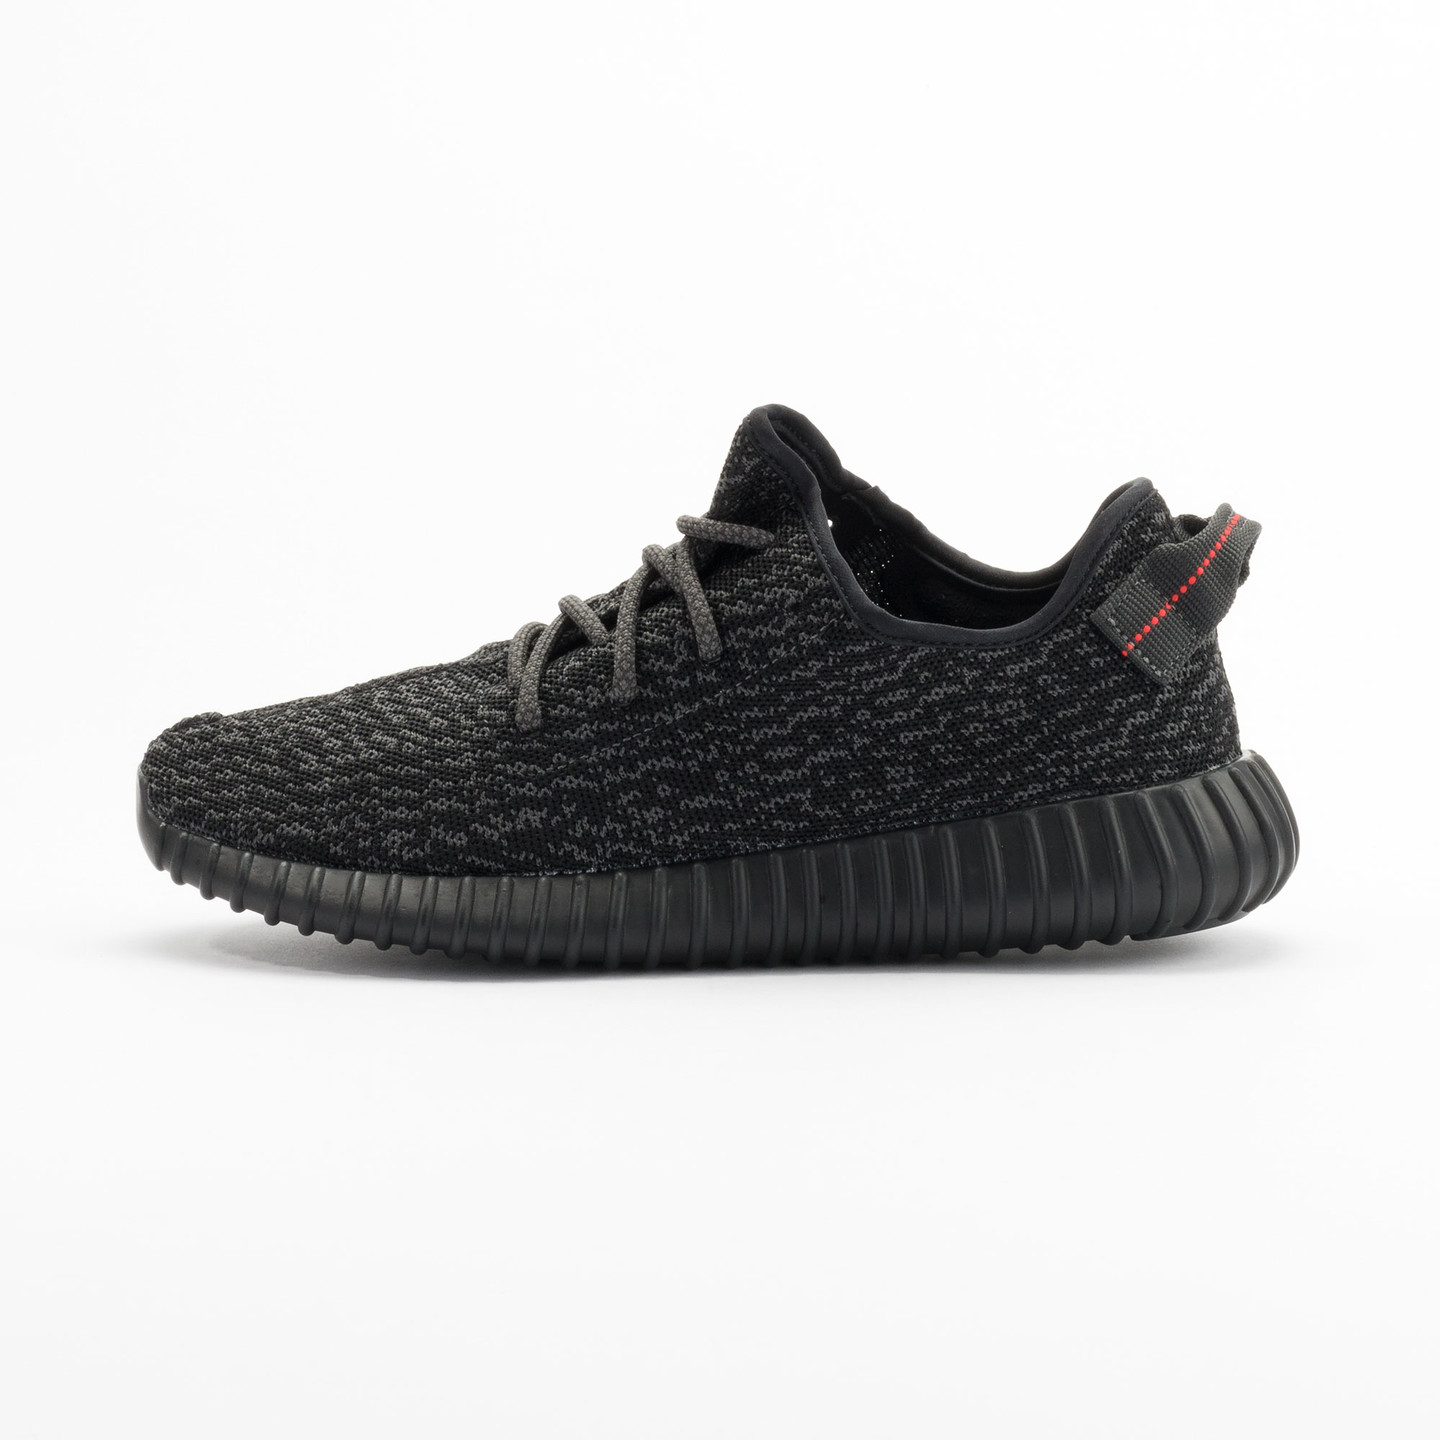 ff6505e5d Adidas Yeezy Boost 350 Pirate Black x Kanye West